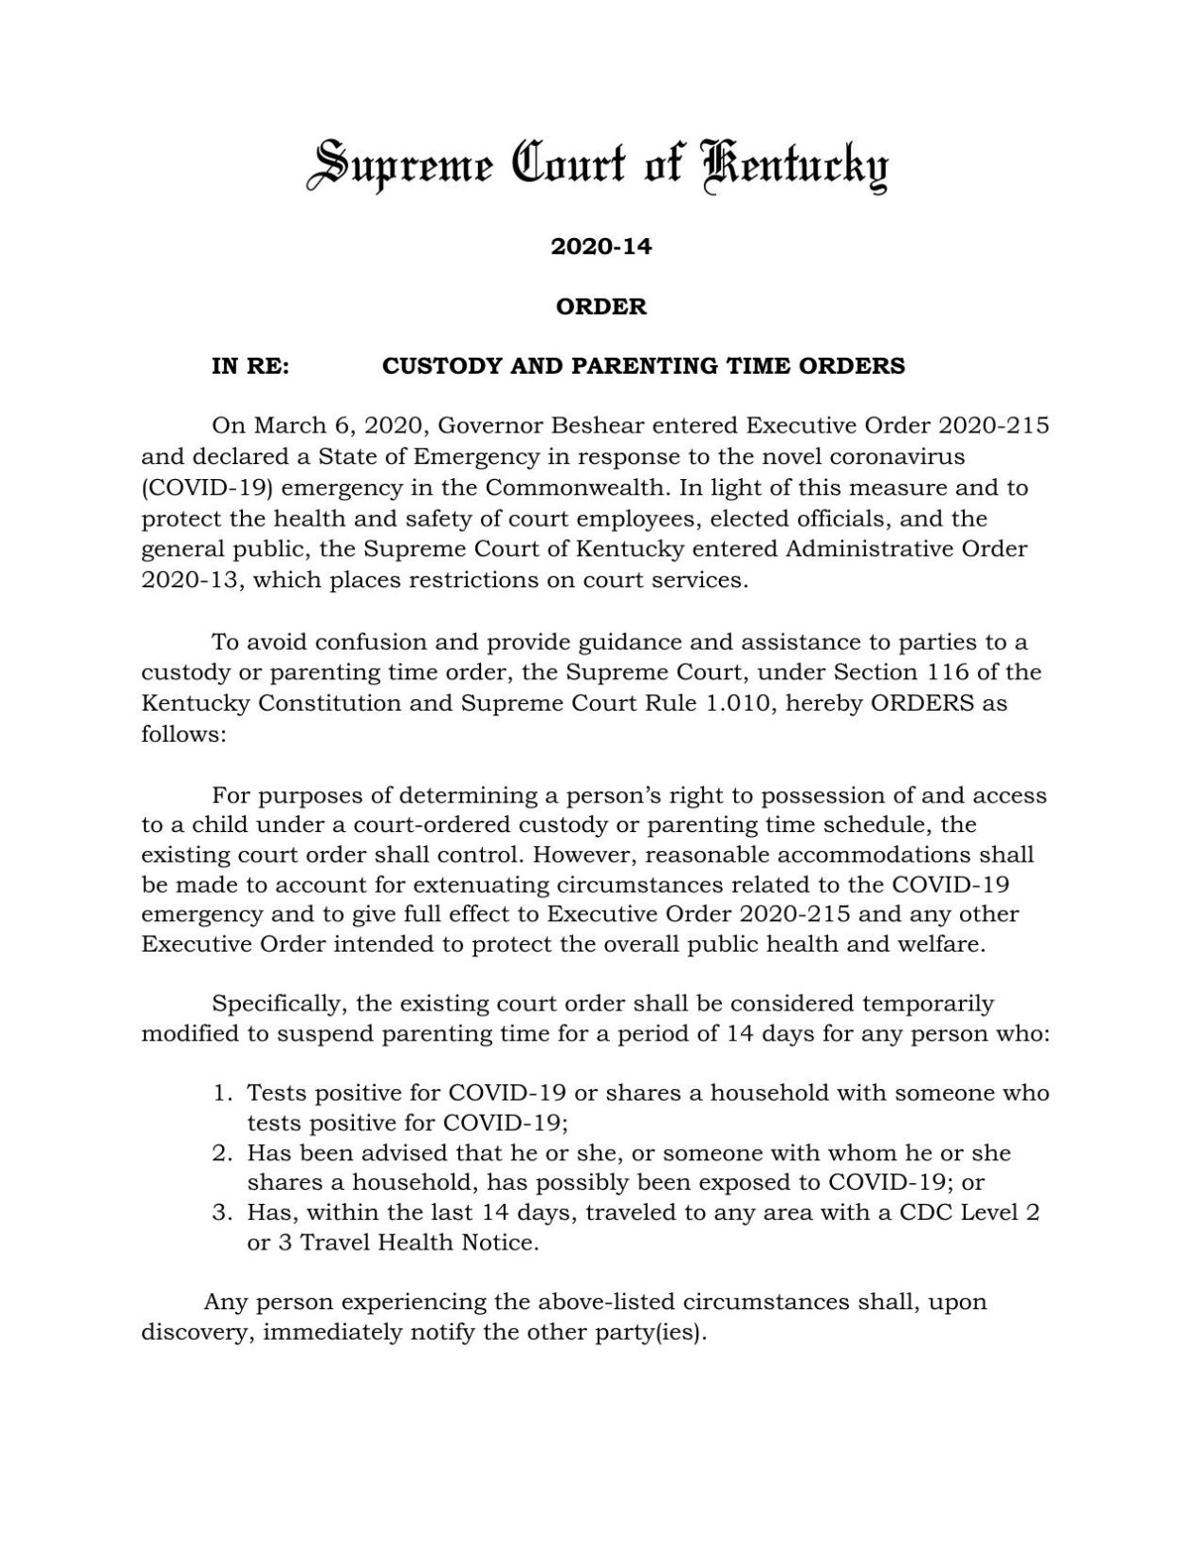 KY Supreme Court Order- Custody and Parenting Time Orders